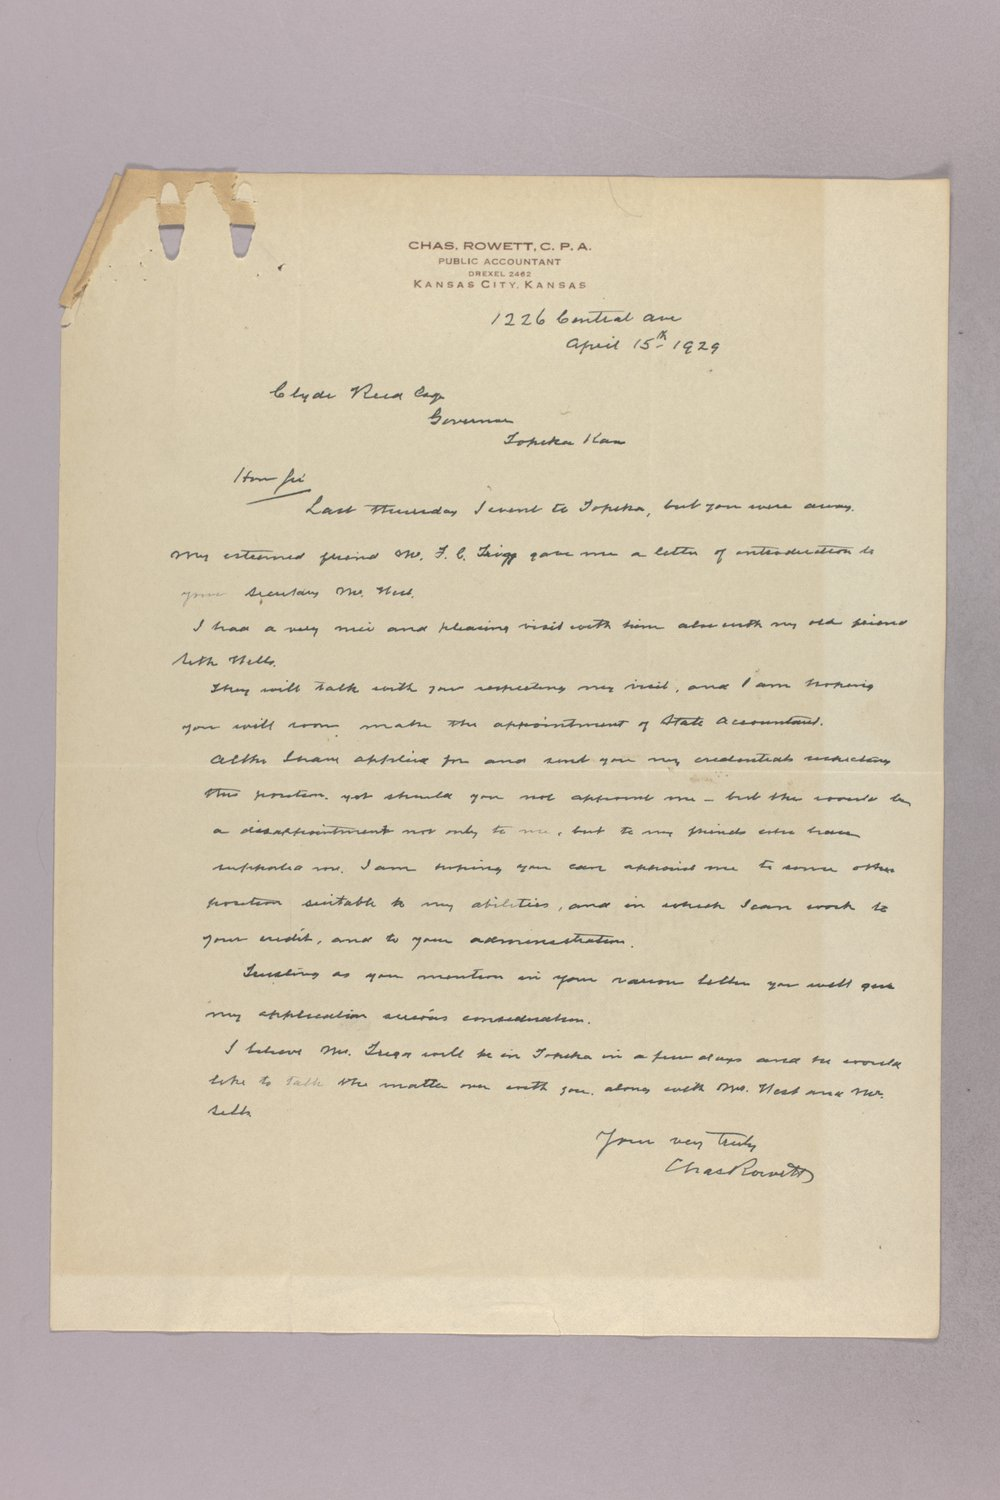 Governor Clyde M. Reed correspondence, State Accountant - 11